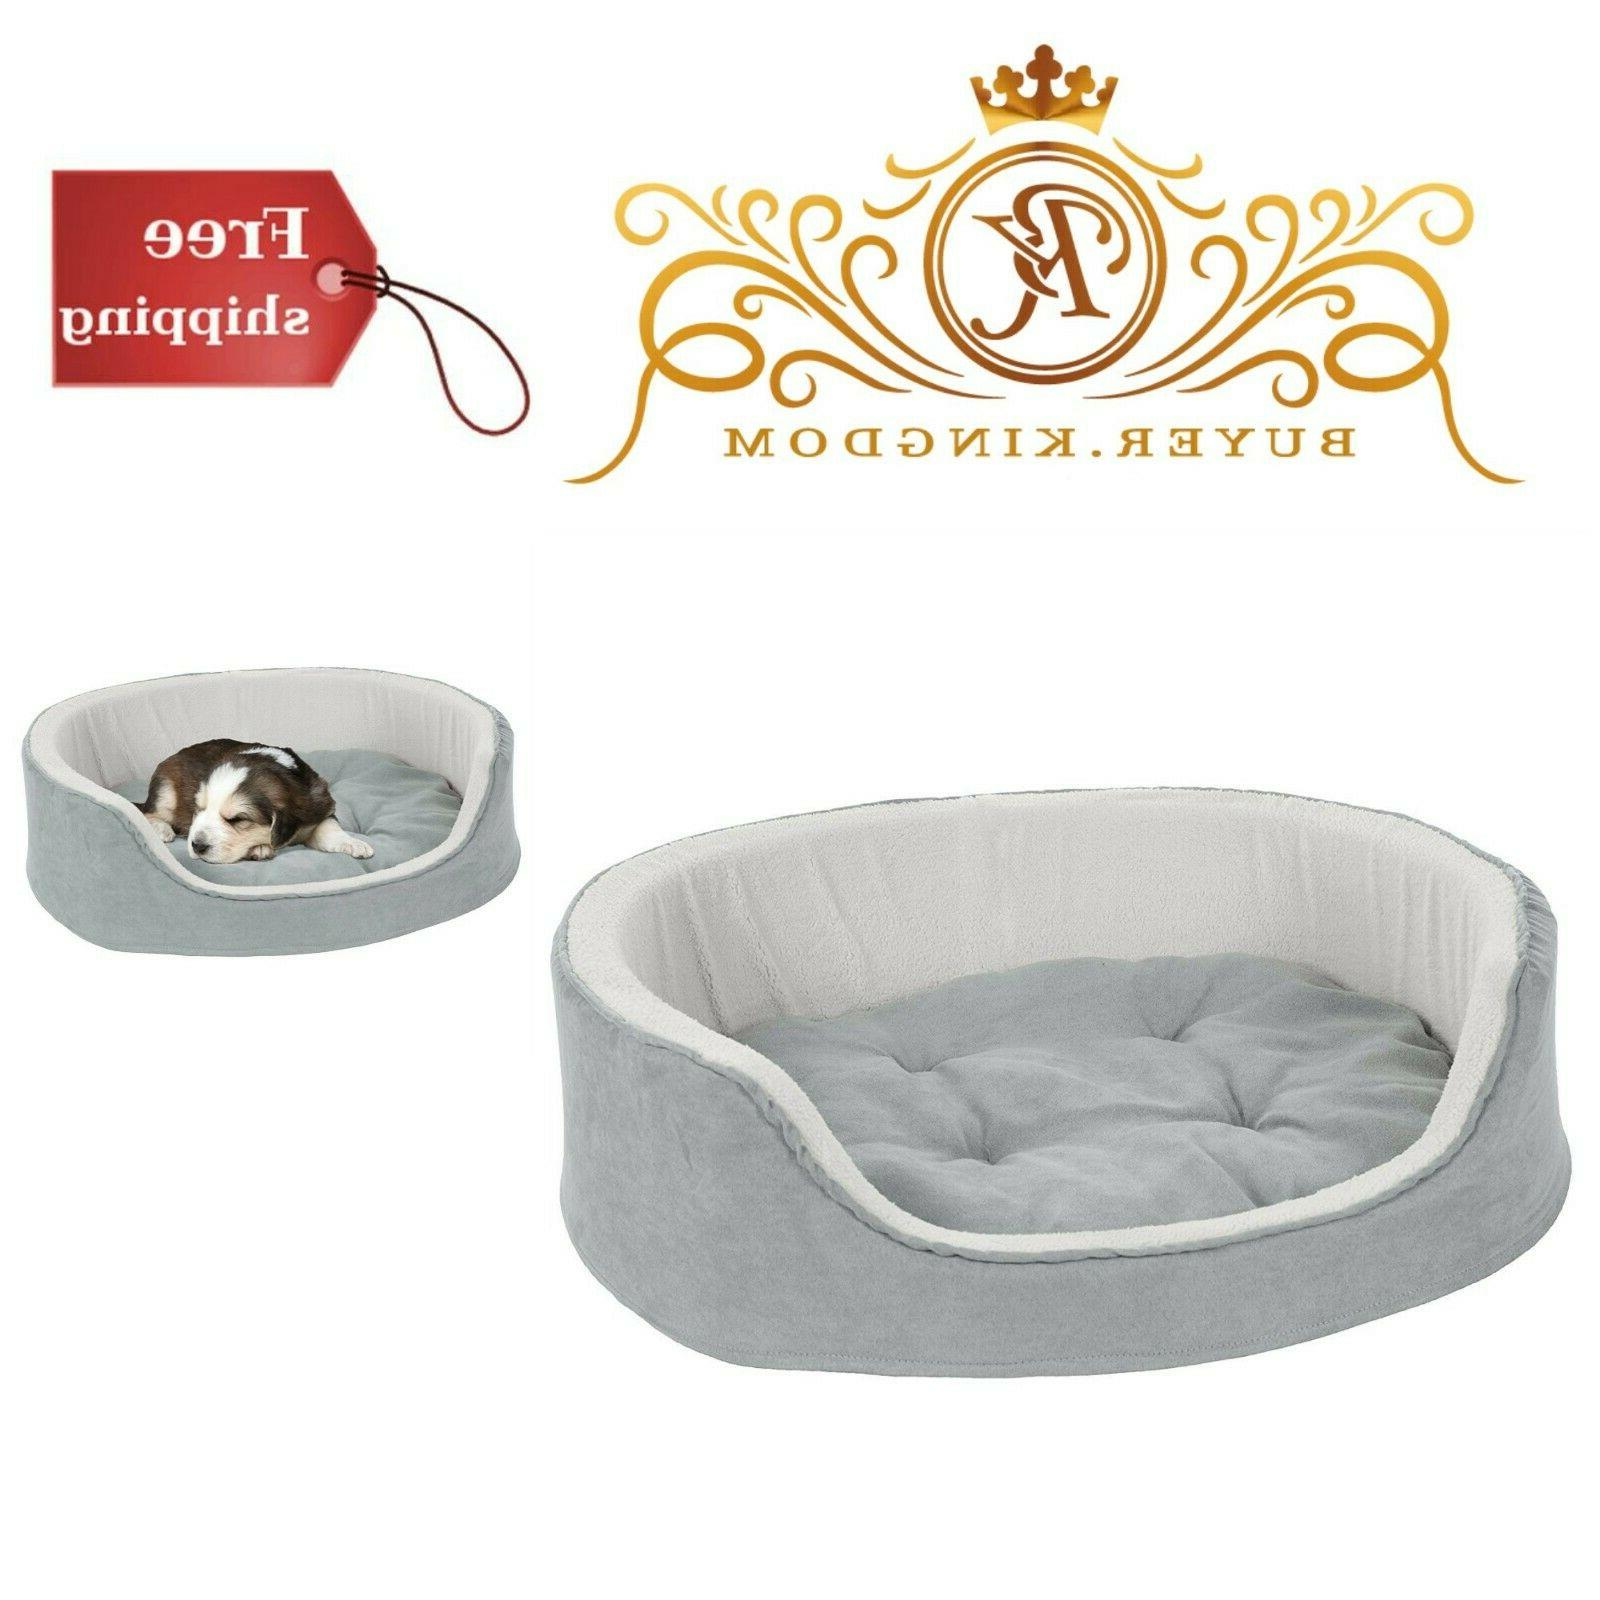 Plush Pet Bed Round Dog Cat Soft Warm Sleeping Microsuede Ho